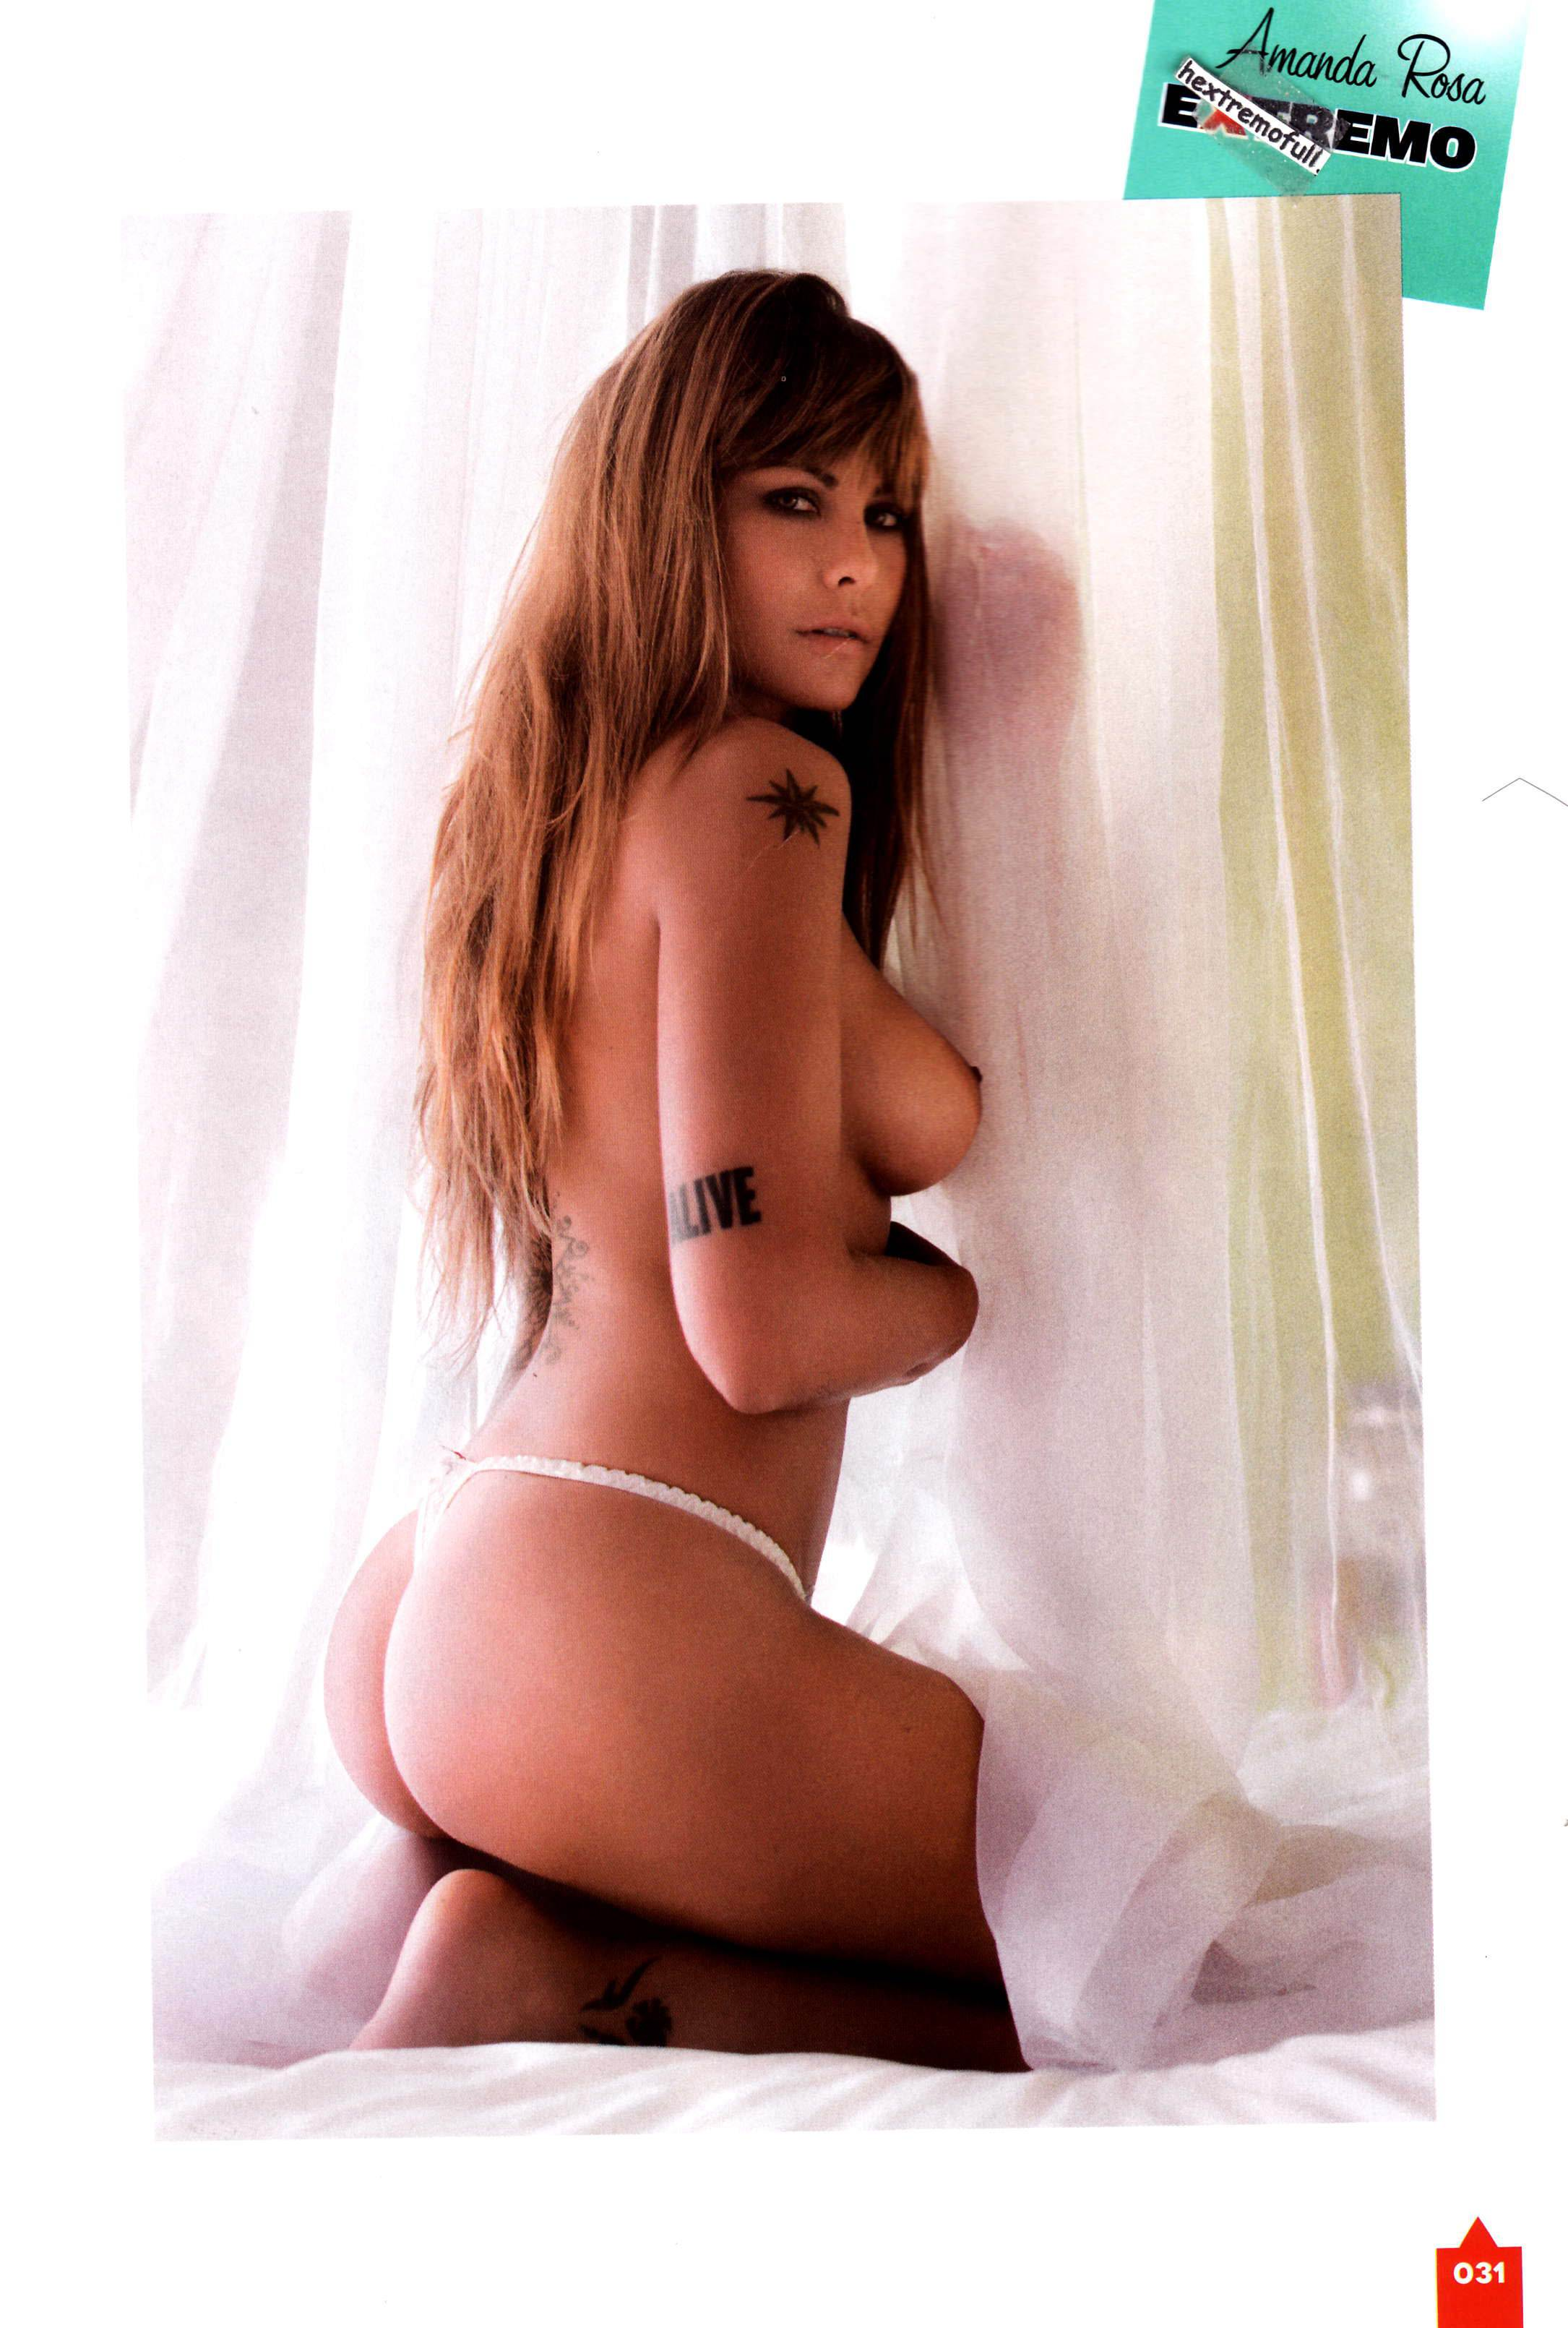 lauren holly fake nude images